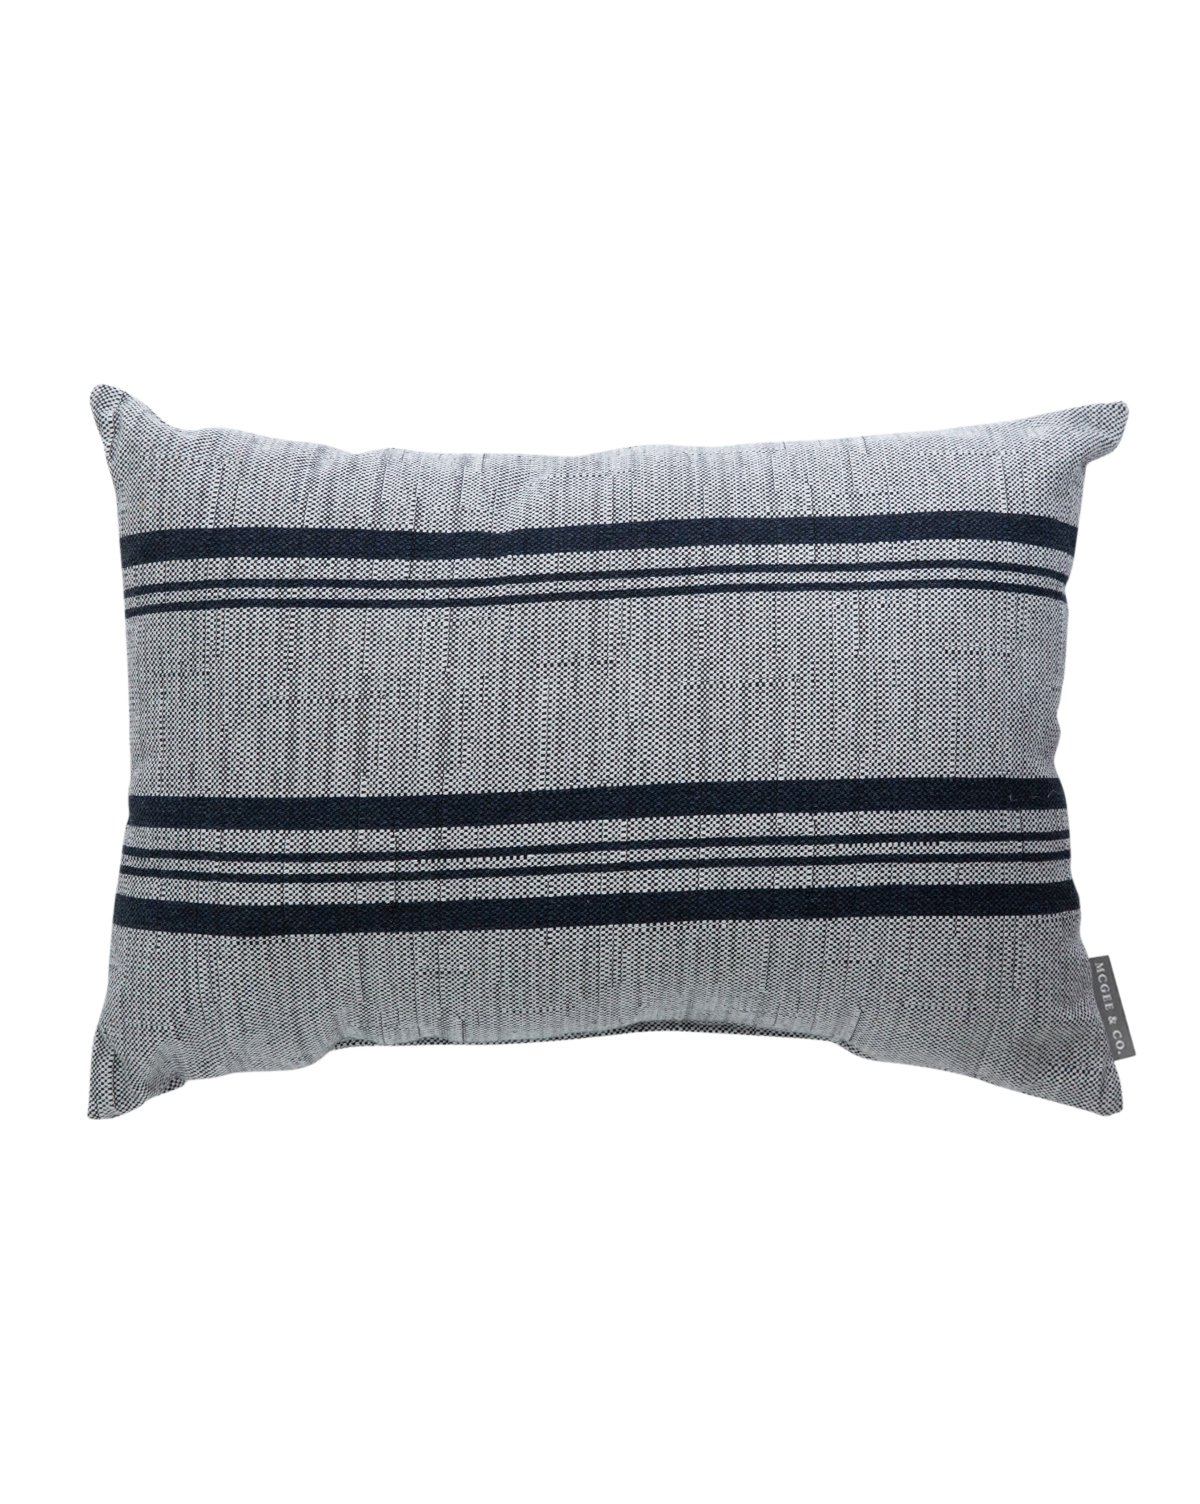 Rowan_Stripe_Indoor_Outdoor_Pillow2_c9339298-e875-422e-bfd0-2caa4292e198.jpg